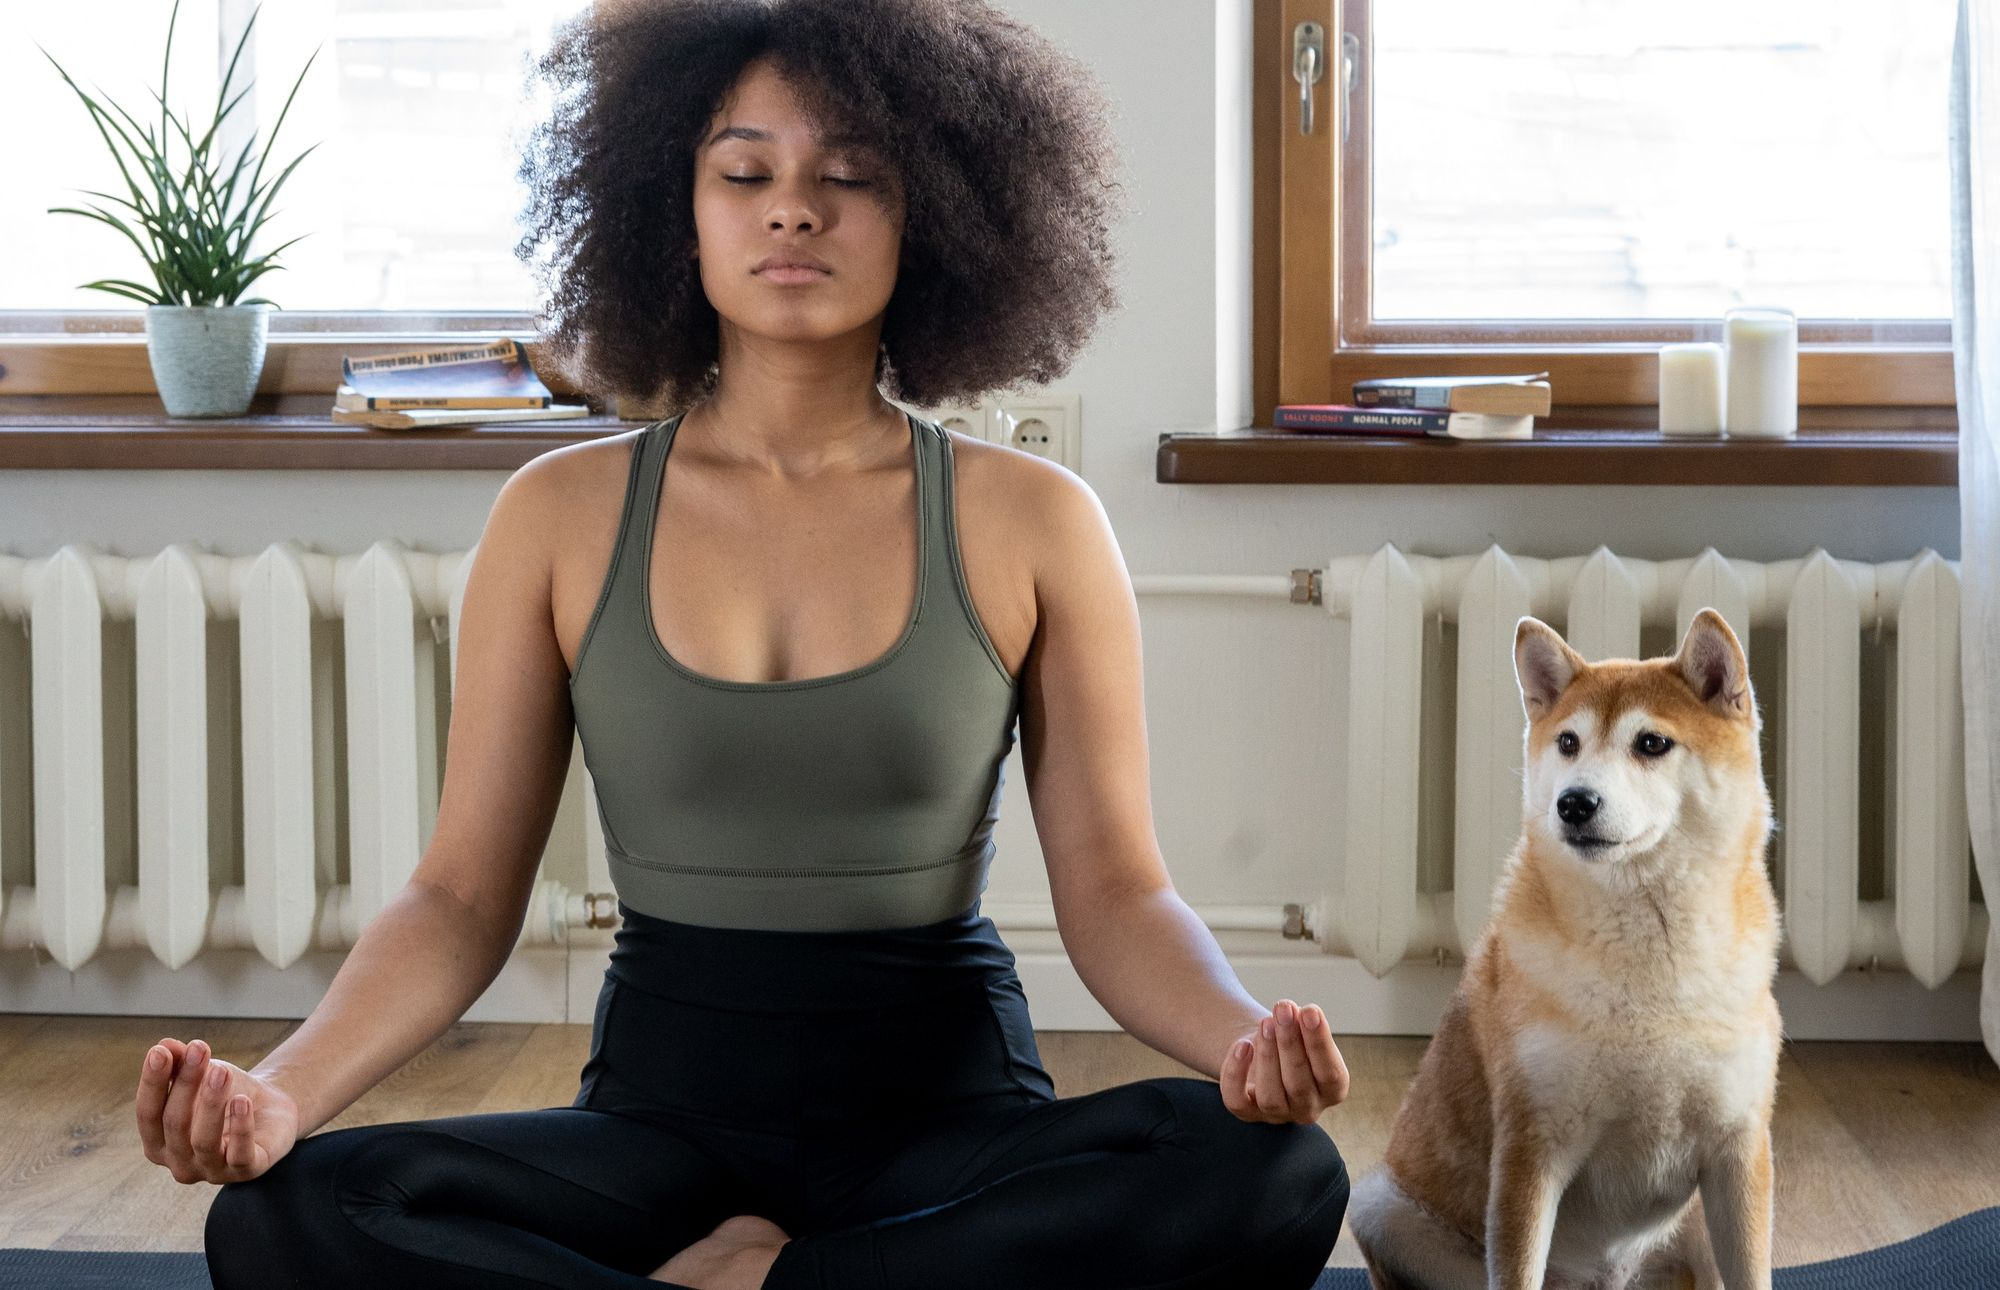 Lady with dog meditating for focus